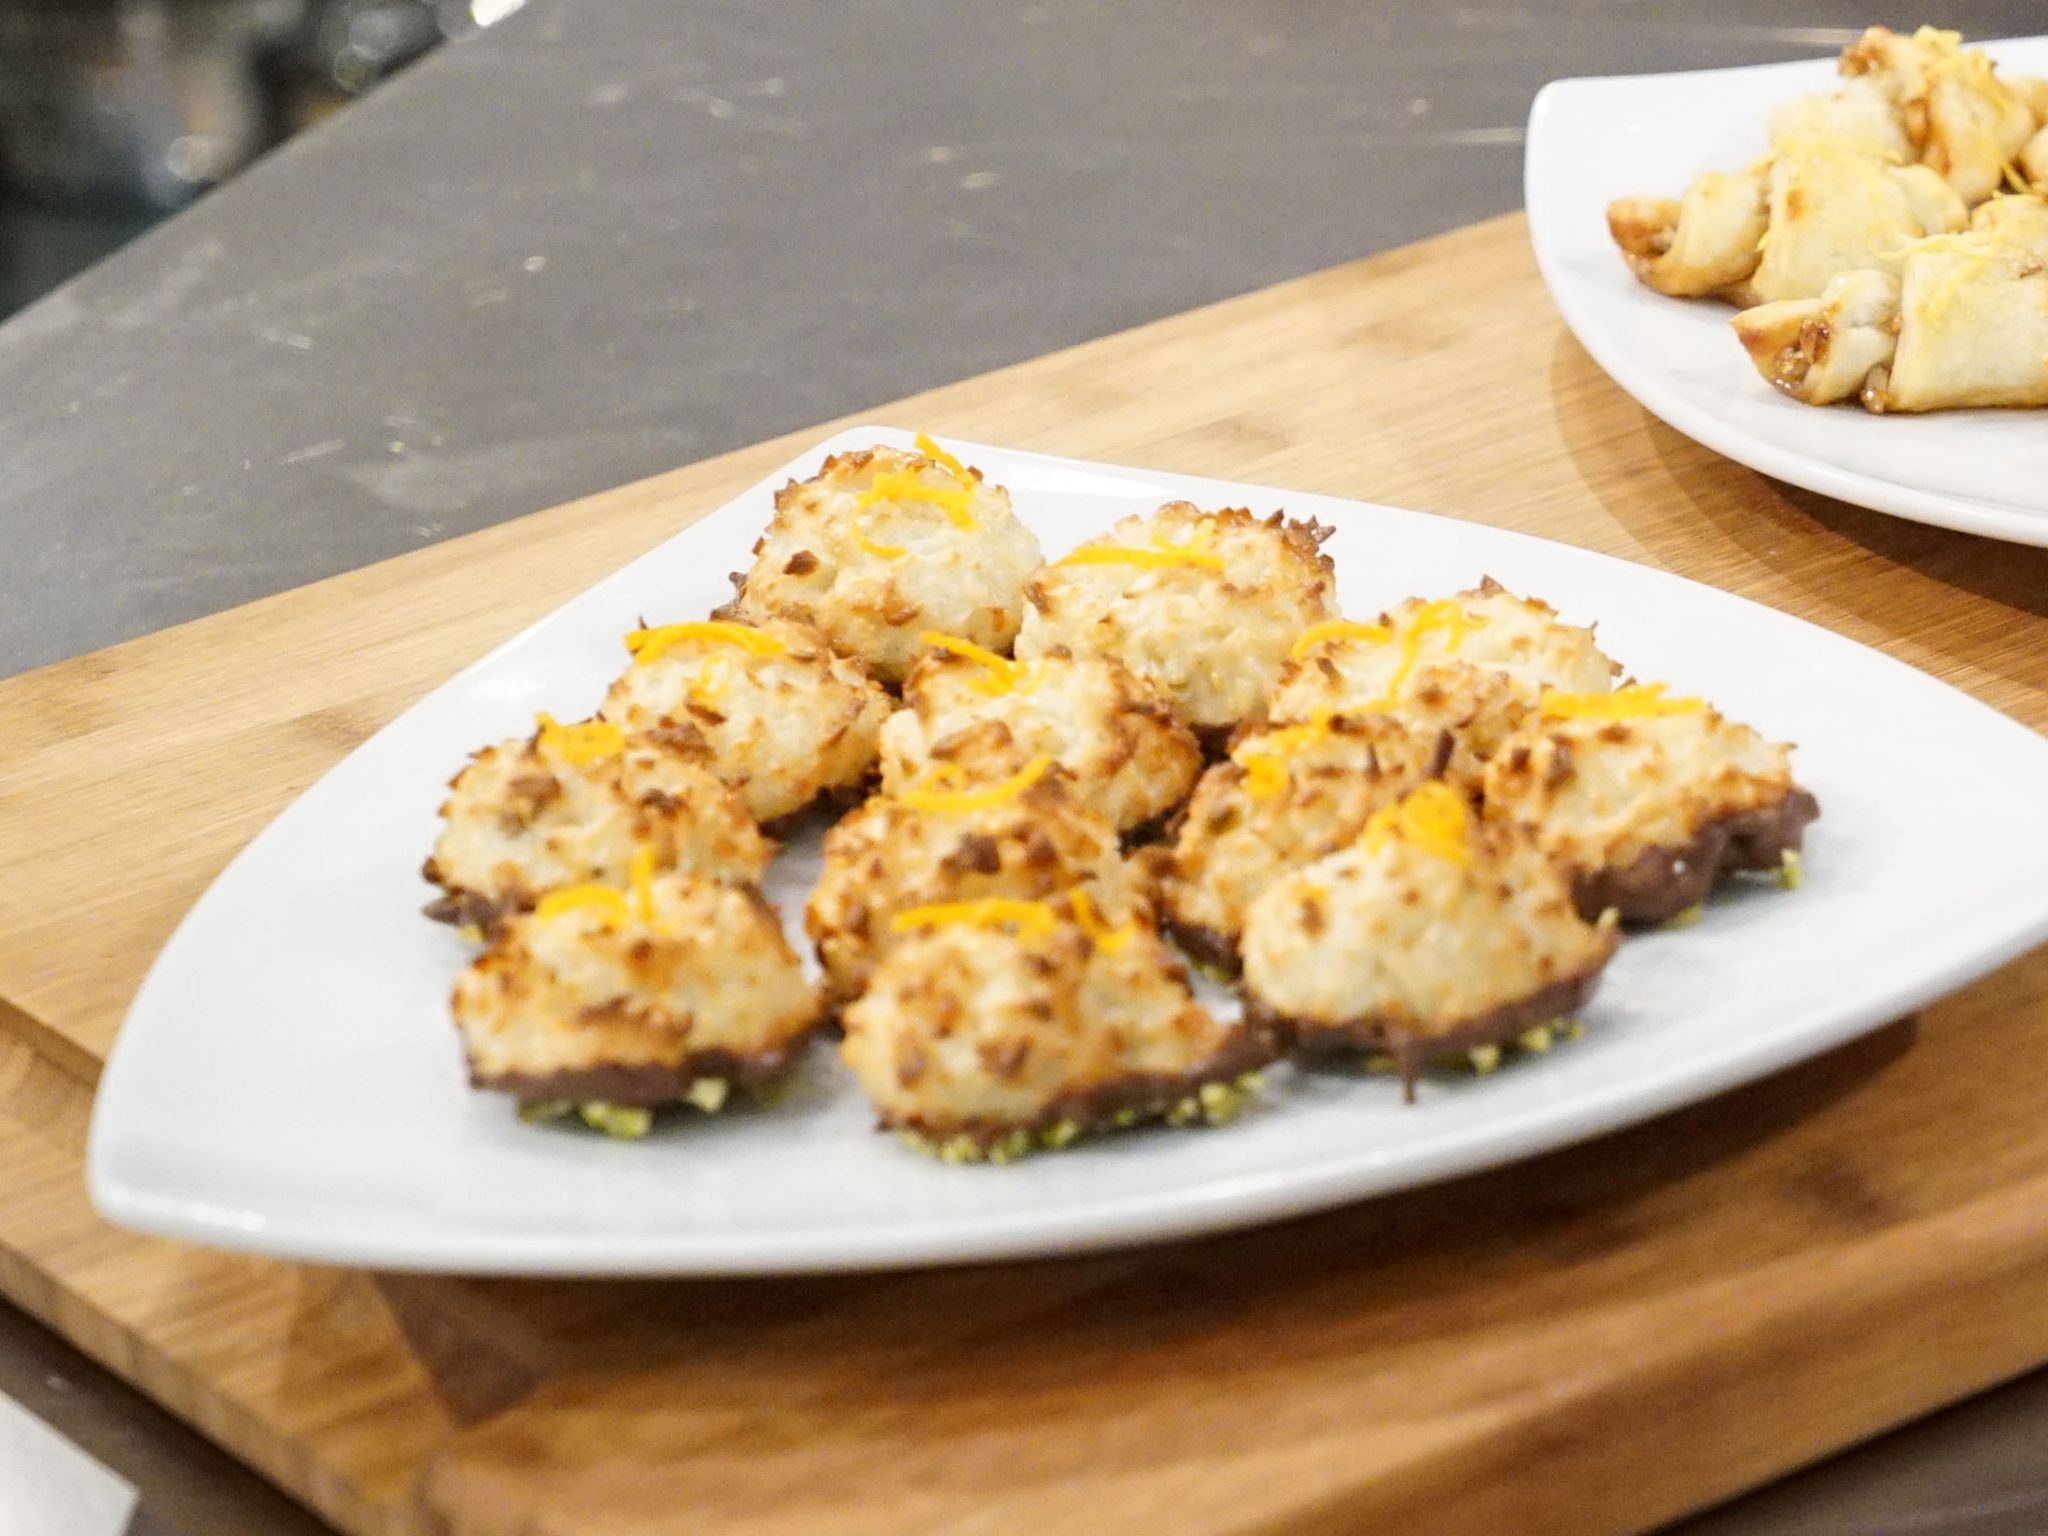 Coconut macaroons recipe holiday baking championship macaroon coconut macaroons recipe holiday baking championship macaroon recipes and macaroons forumfinder Gallery